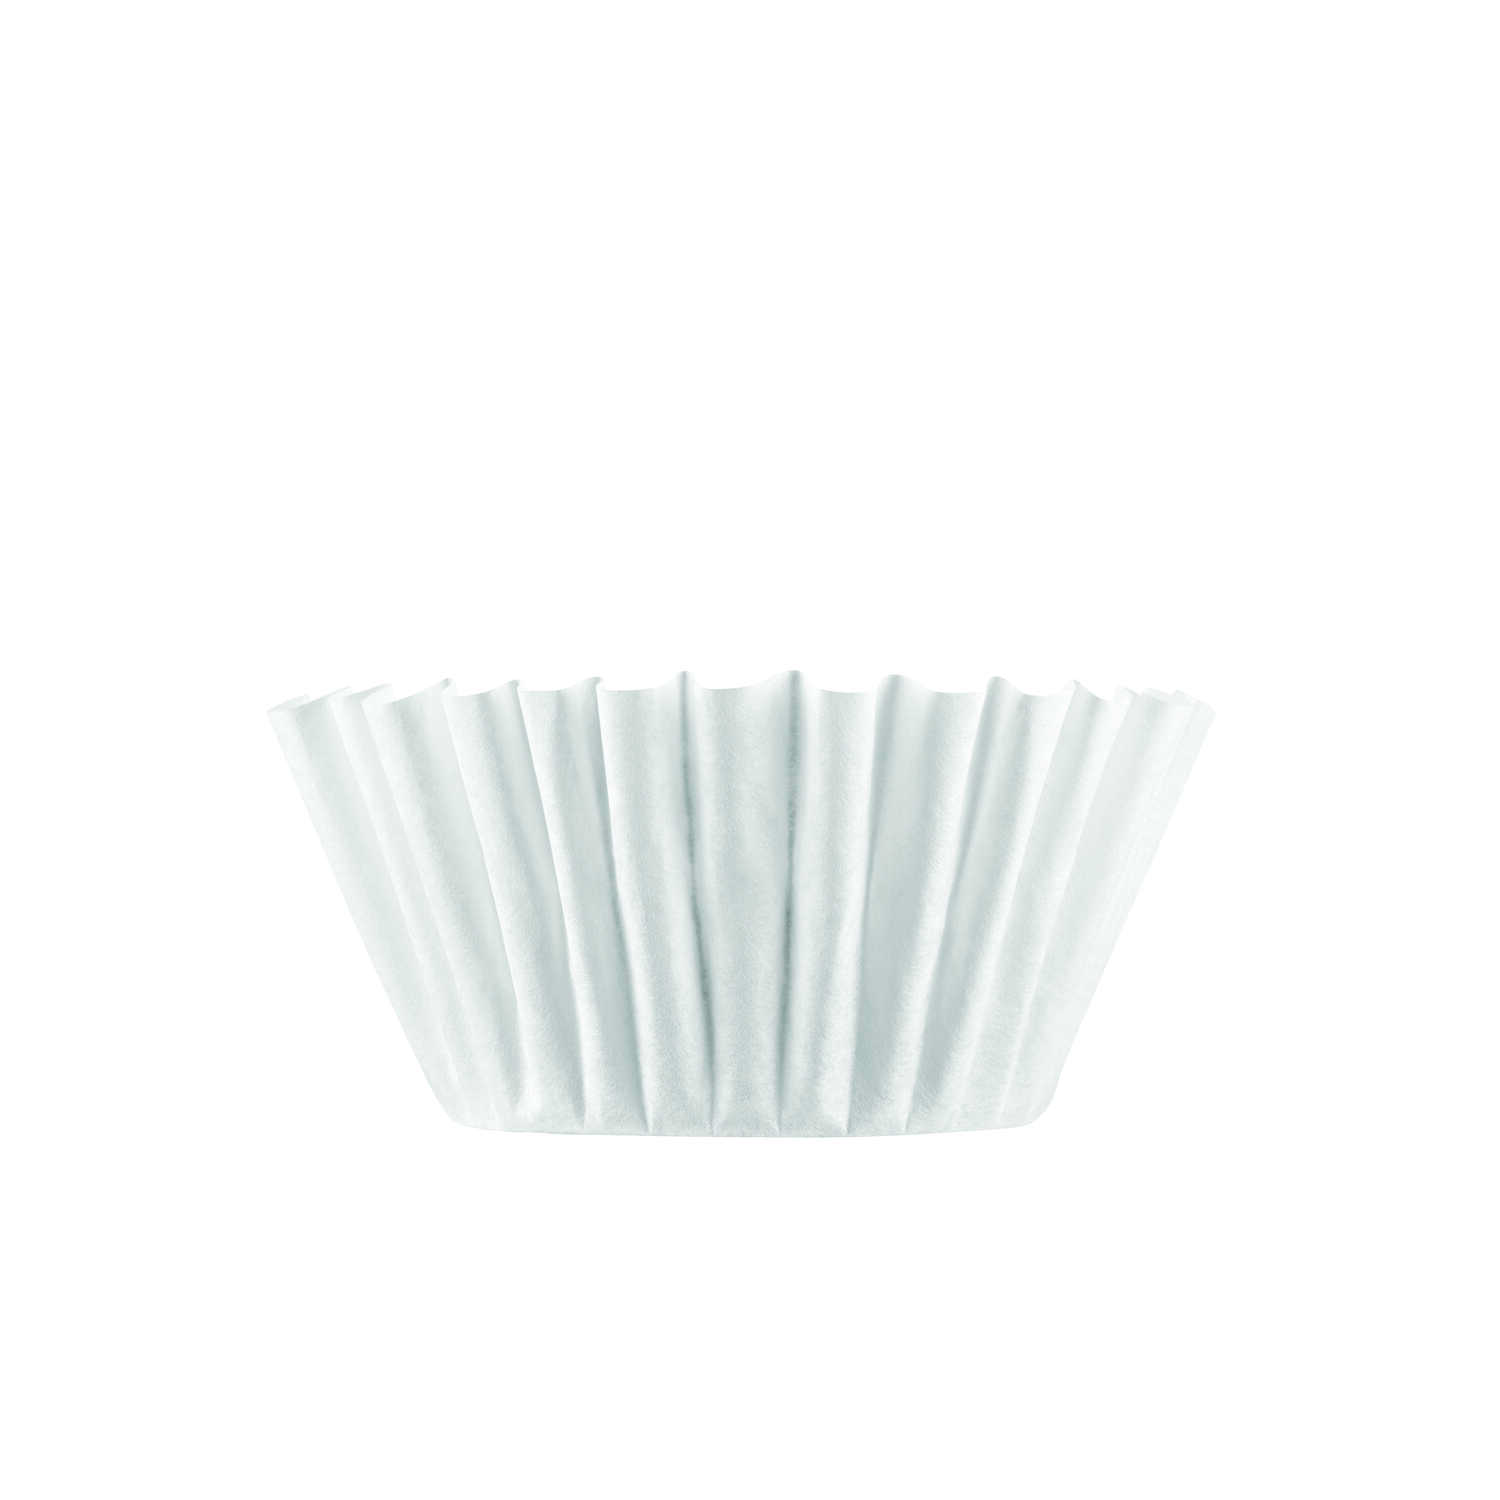 BUNN  10 cups Basket  Coffee Filter  100 count